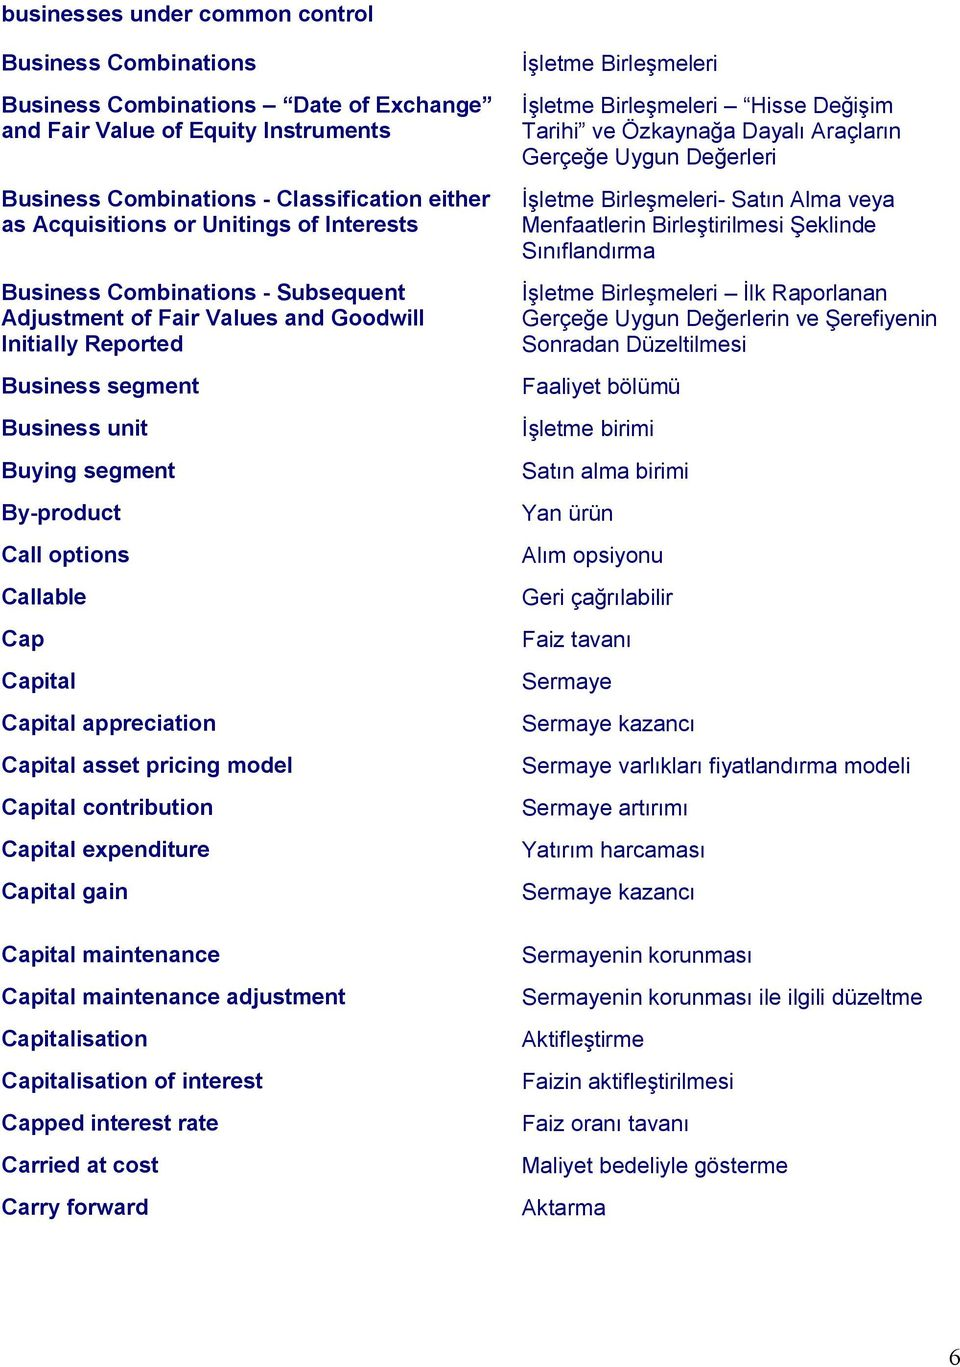 Capital Capital appreciation Capital asset pricing model Capital contribution Capital expenditure Capital gain Capital maintenance Capital maintenance adjustment Capitalisation Capitalisation of